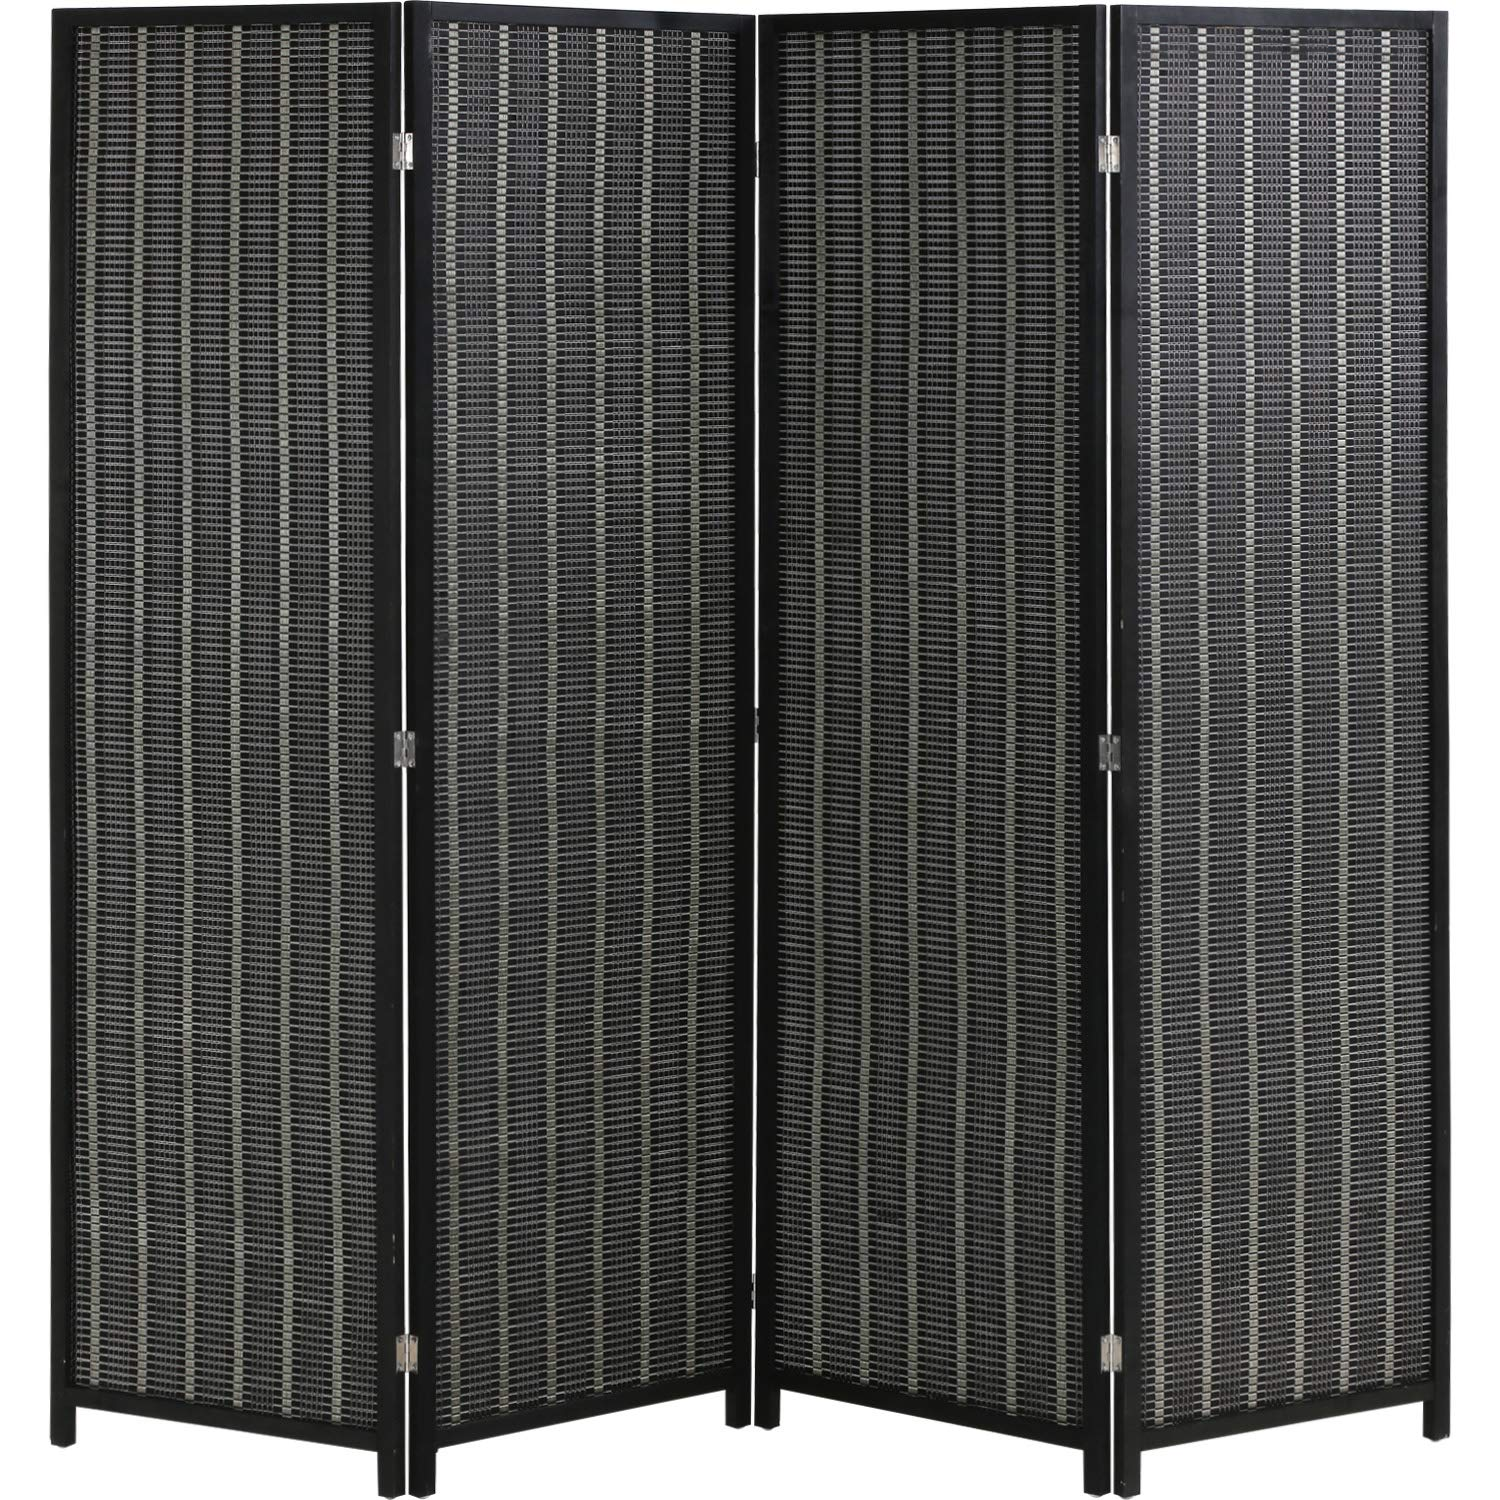 FDW Folding Privacy Screen 4 Panel 72 Inches High 17.7 Inches Wide Divider Living Room Bedroom Study, Black by FDW